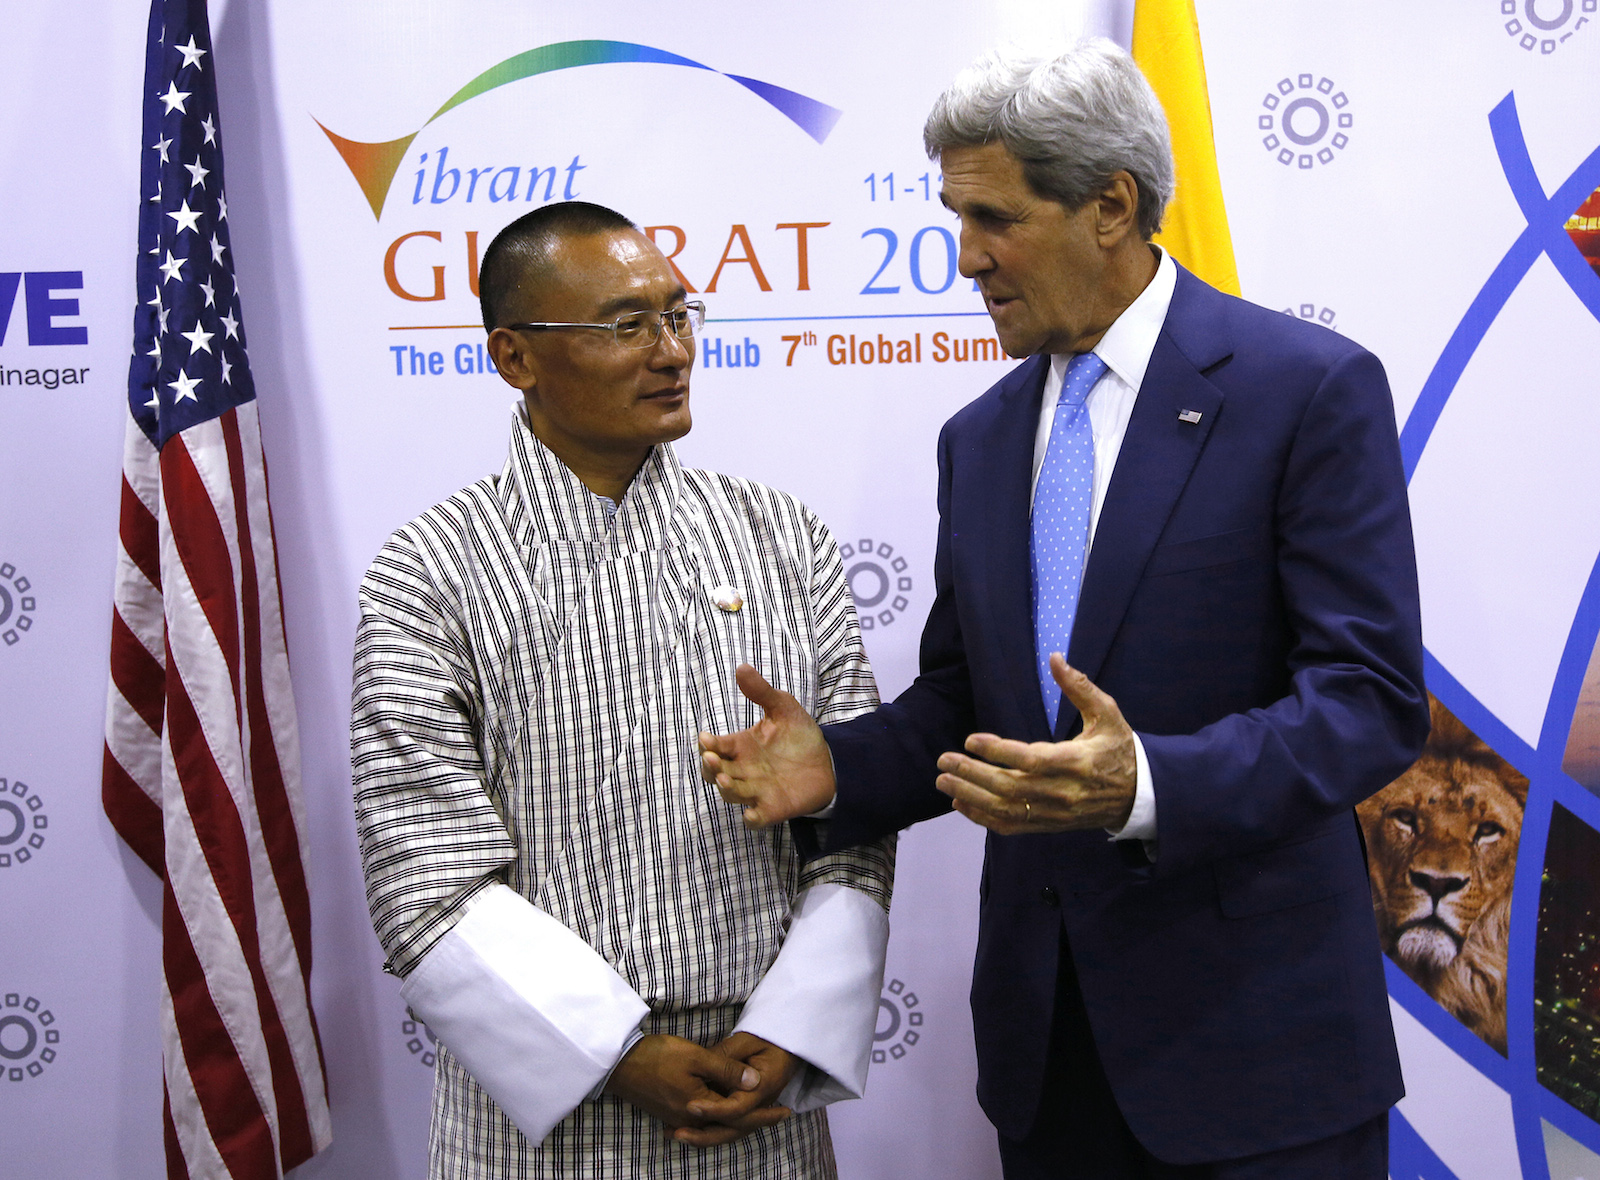 U.S. Secretary of State John Kerry (R) meets with Prime Minister of Bhutan Tshering Tobgay in Ahmedabad January 11, 2015.